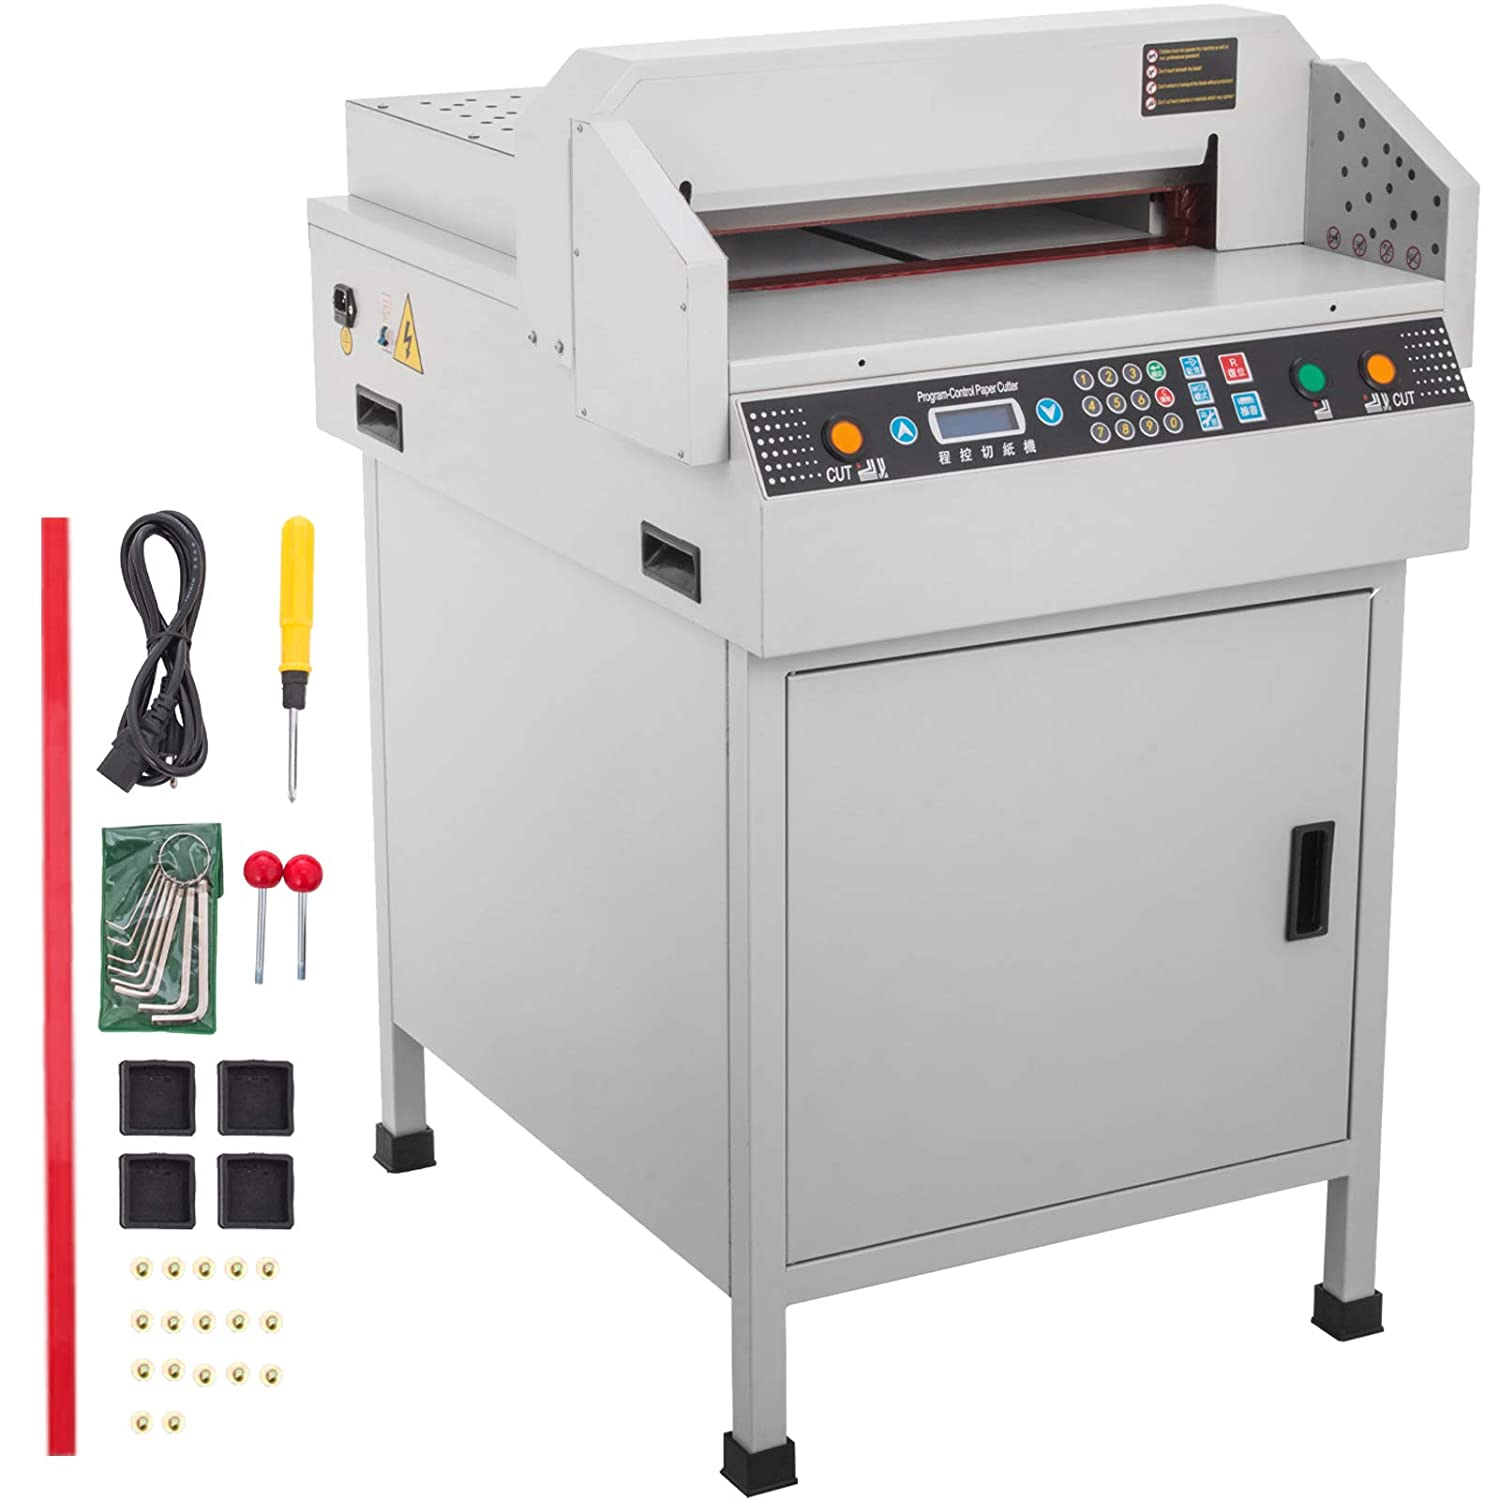 Mophorn Electric Paper Cutter 450mm 17 7 Inch Paper Cutter Guillotine  Numerical Control Automatic Digital